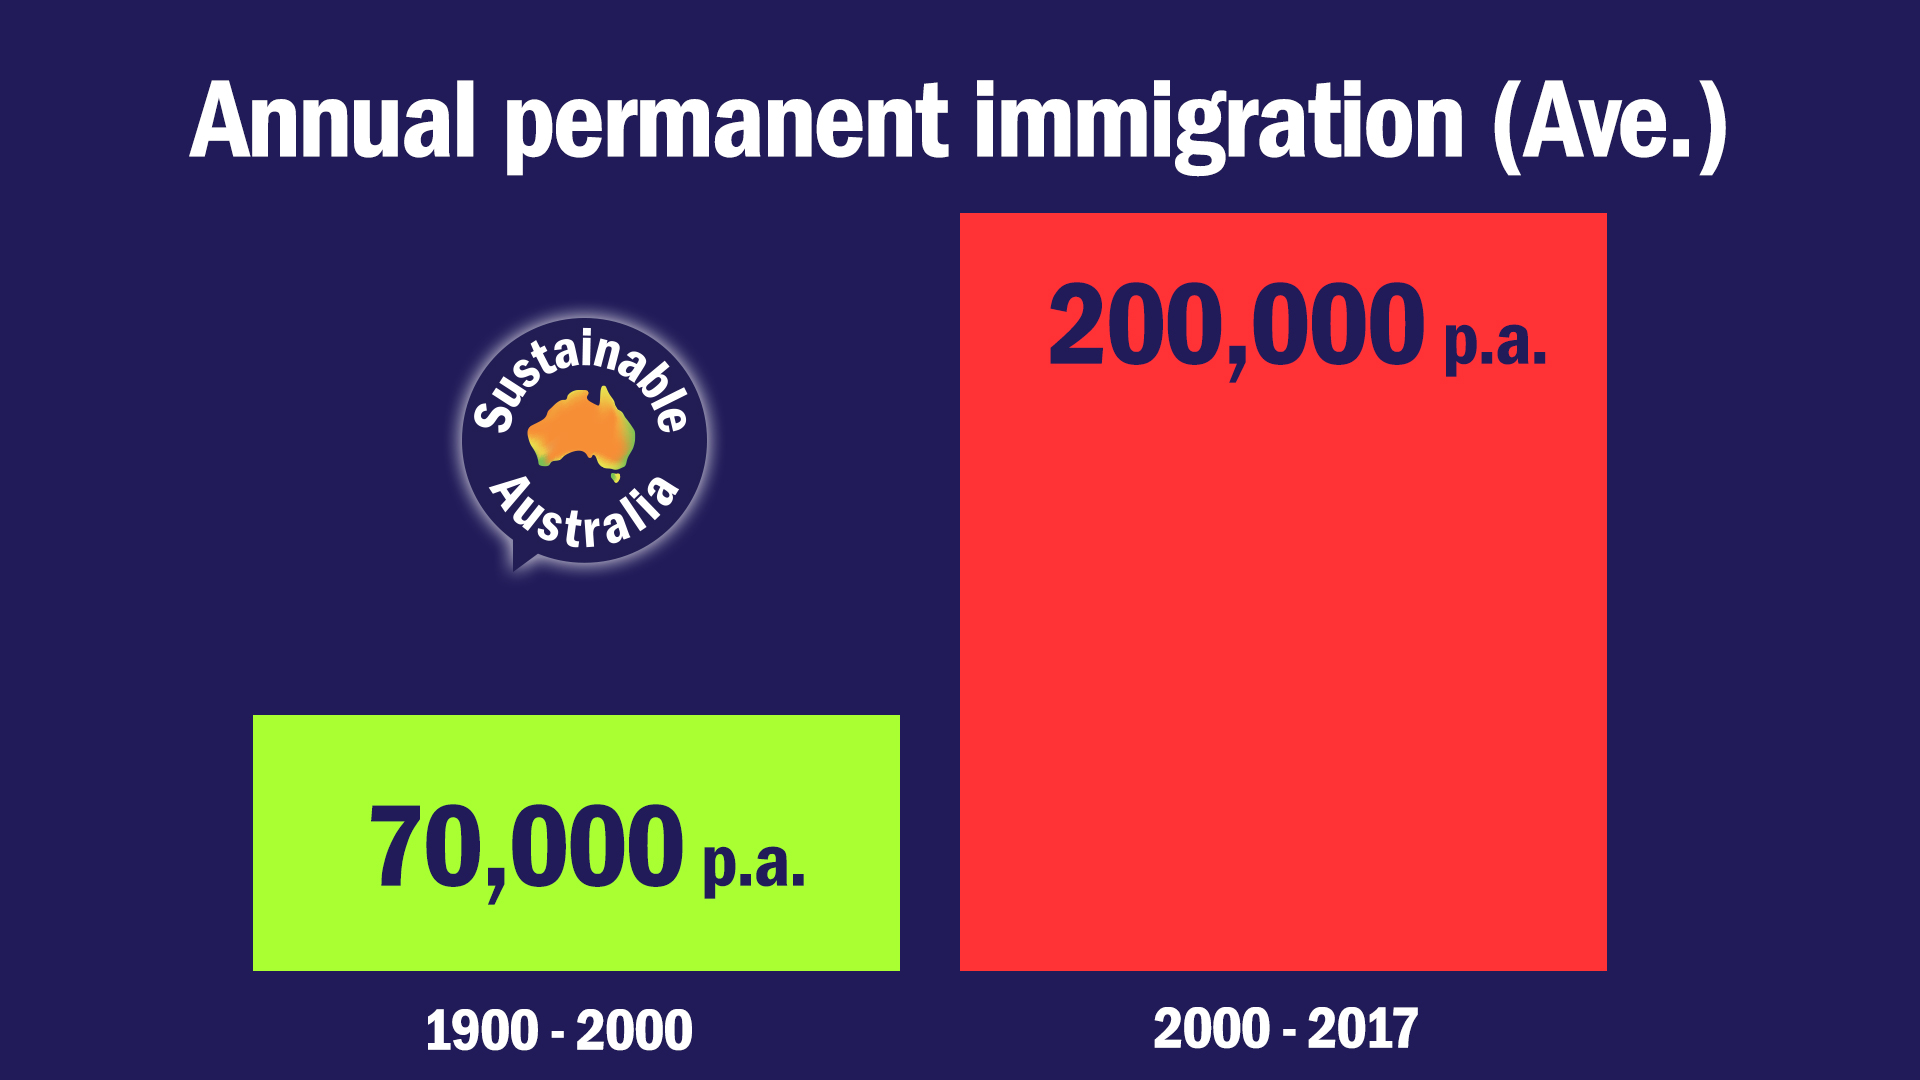 Sustainable_Australia_Versus_Big_Australia-Immigration.jpg